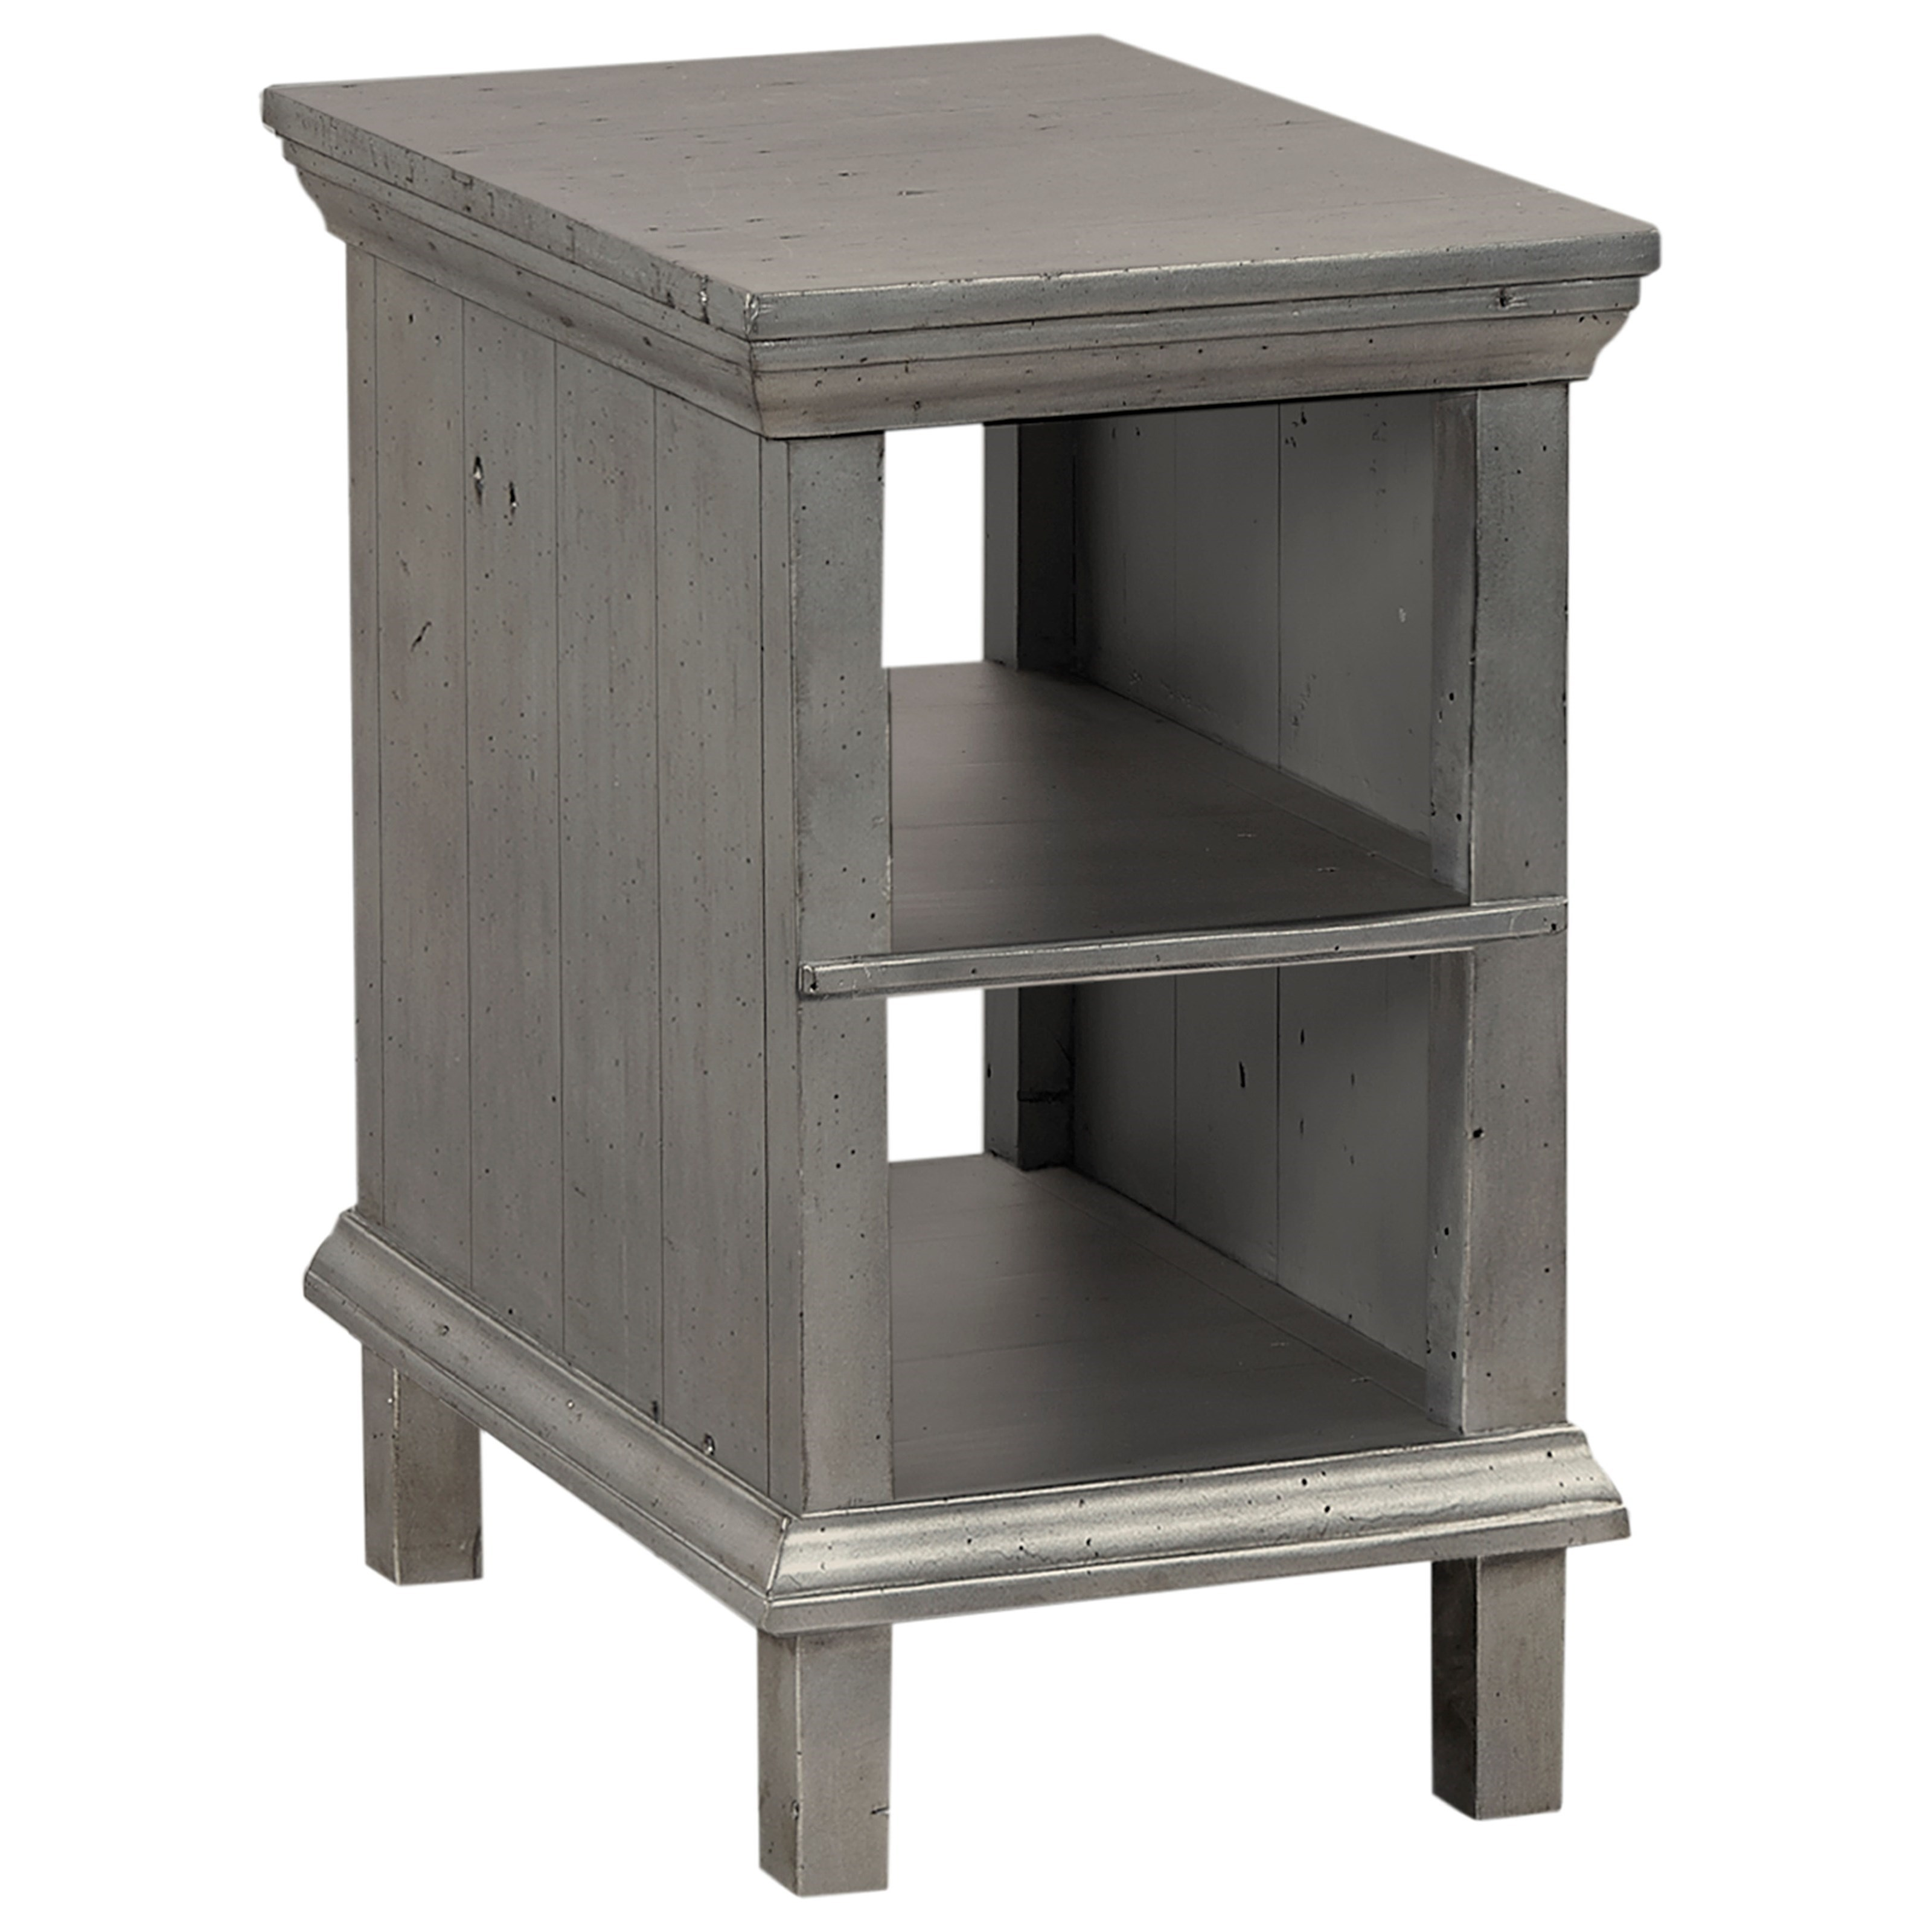 Aspenhome Preferences Chairside Table  - Item Number: I44-9130-MET